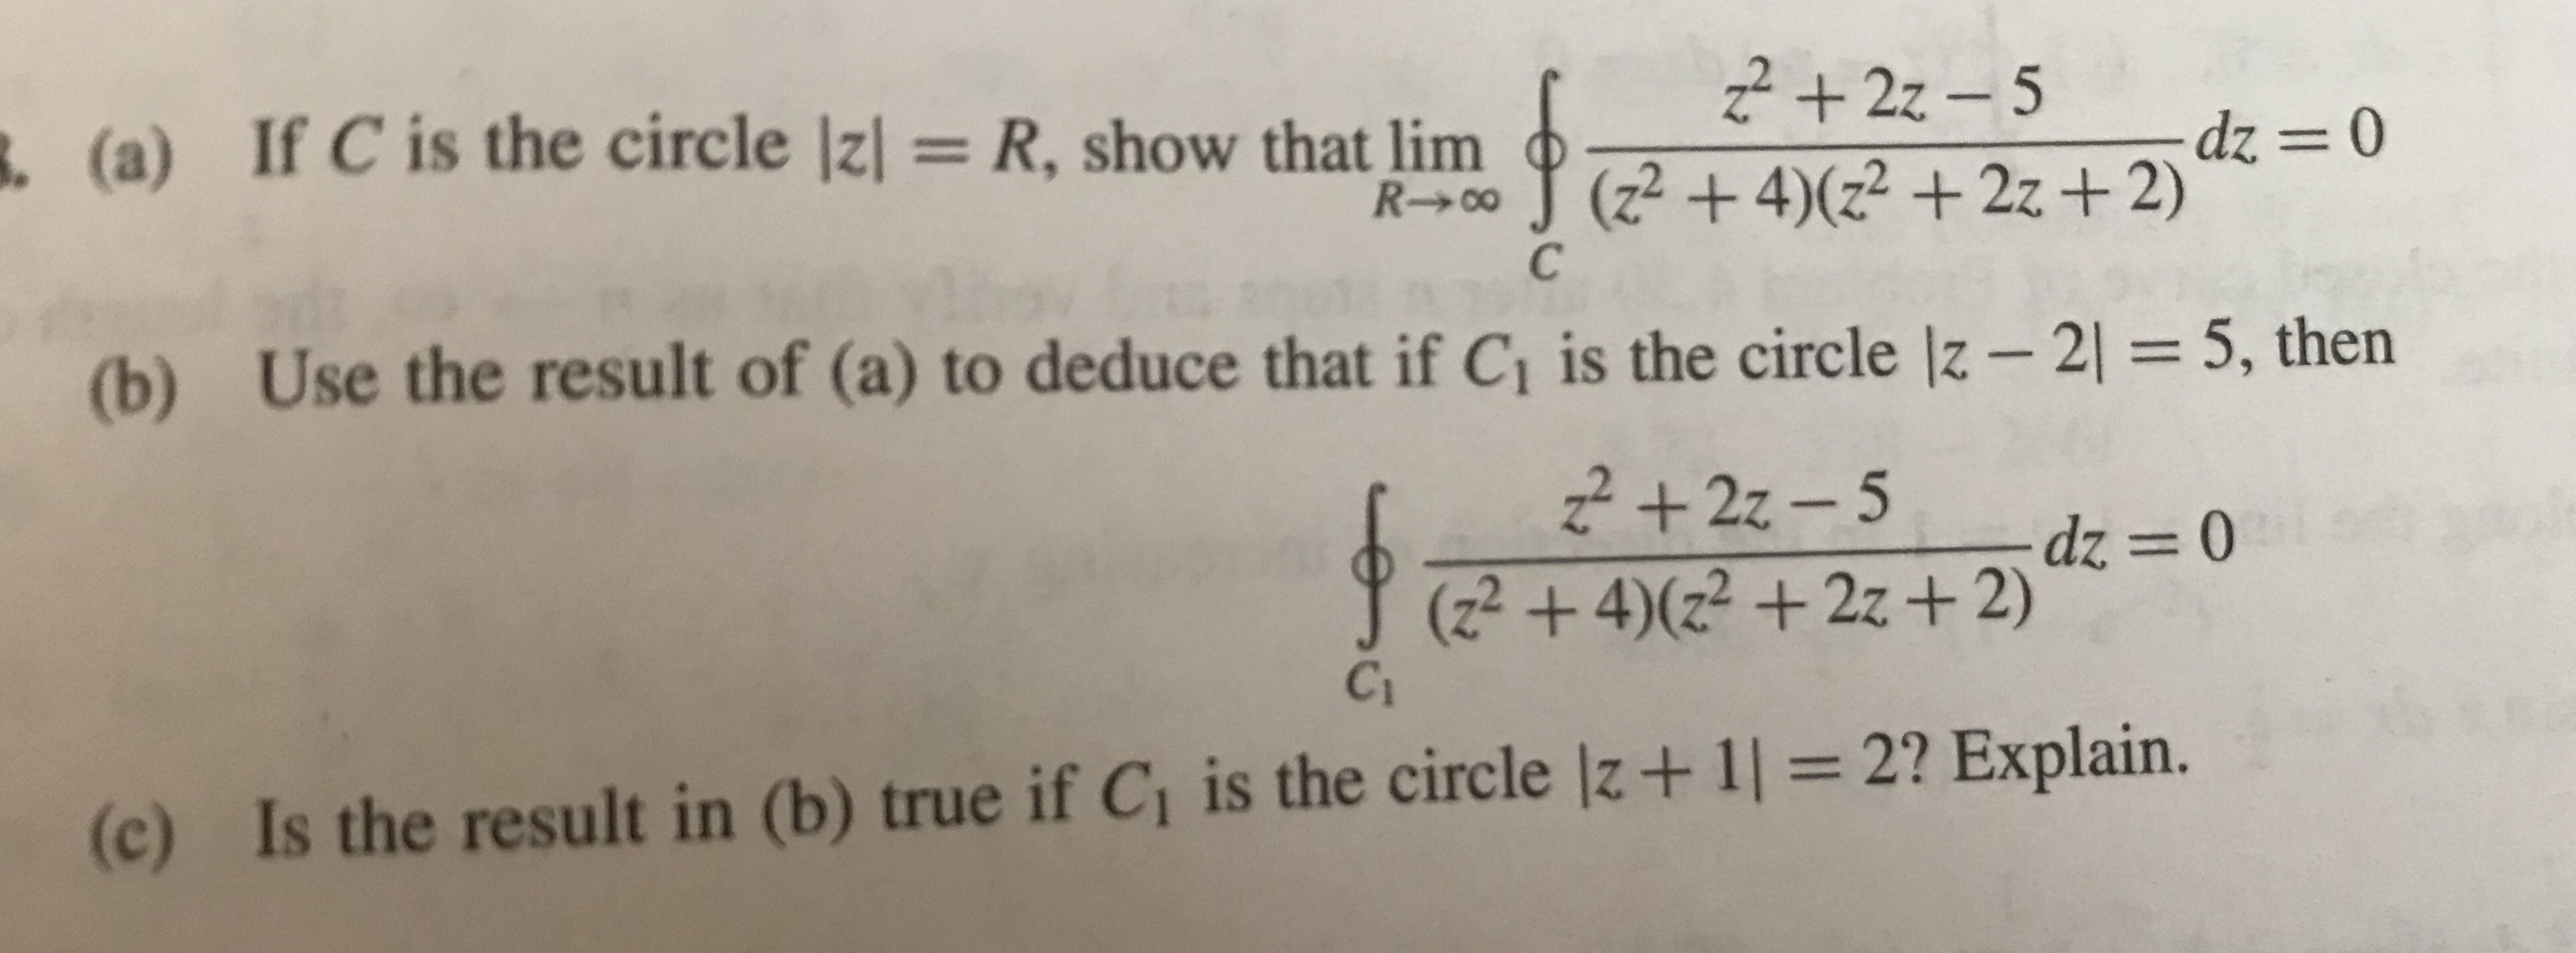 (a) If C is the circle Izl = R, show that linn (2 + 4)(z2 +22+2) (b) Use the result of (a) to deduce that if Ci is the circle lz-2 5, then (2 +42 +2z+2) Ci (c) Is the result in (b) true if Ci is the circle lz+1l 2? Explain.